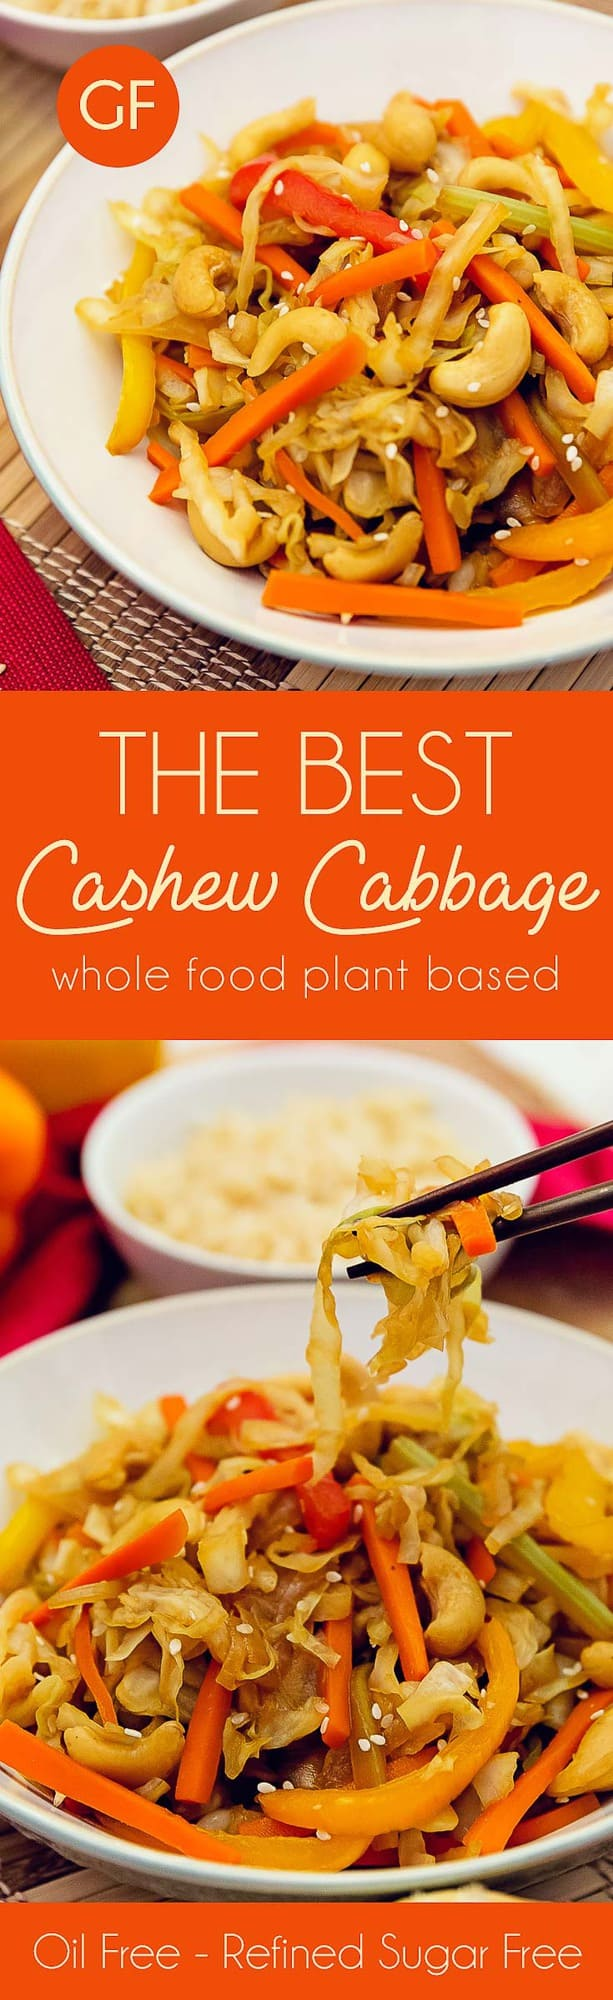 whole food plant based, cashew cabbage stir fry, the best cashew cabbage stir fry, whole food plant based, healthy recipes, recipes, vegan, gluten free, vegetarian, no oil, refined sugar free, wholesome